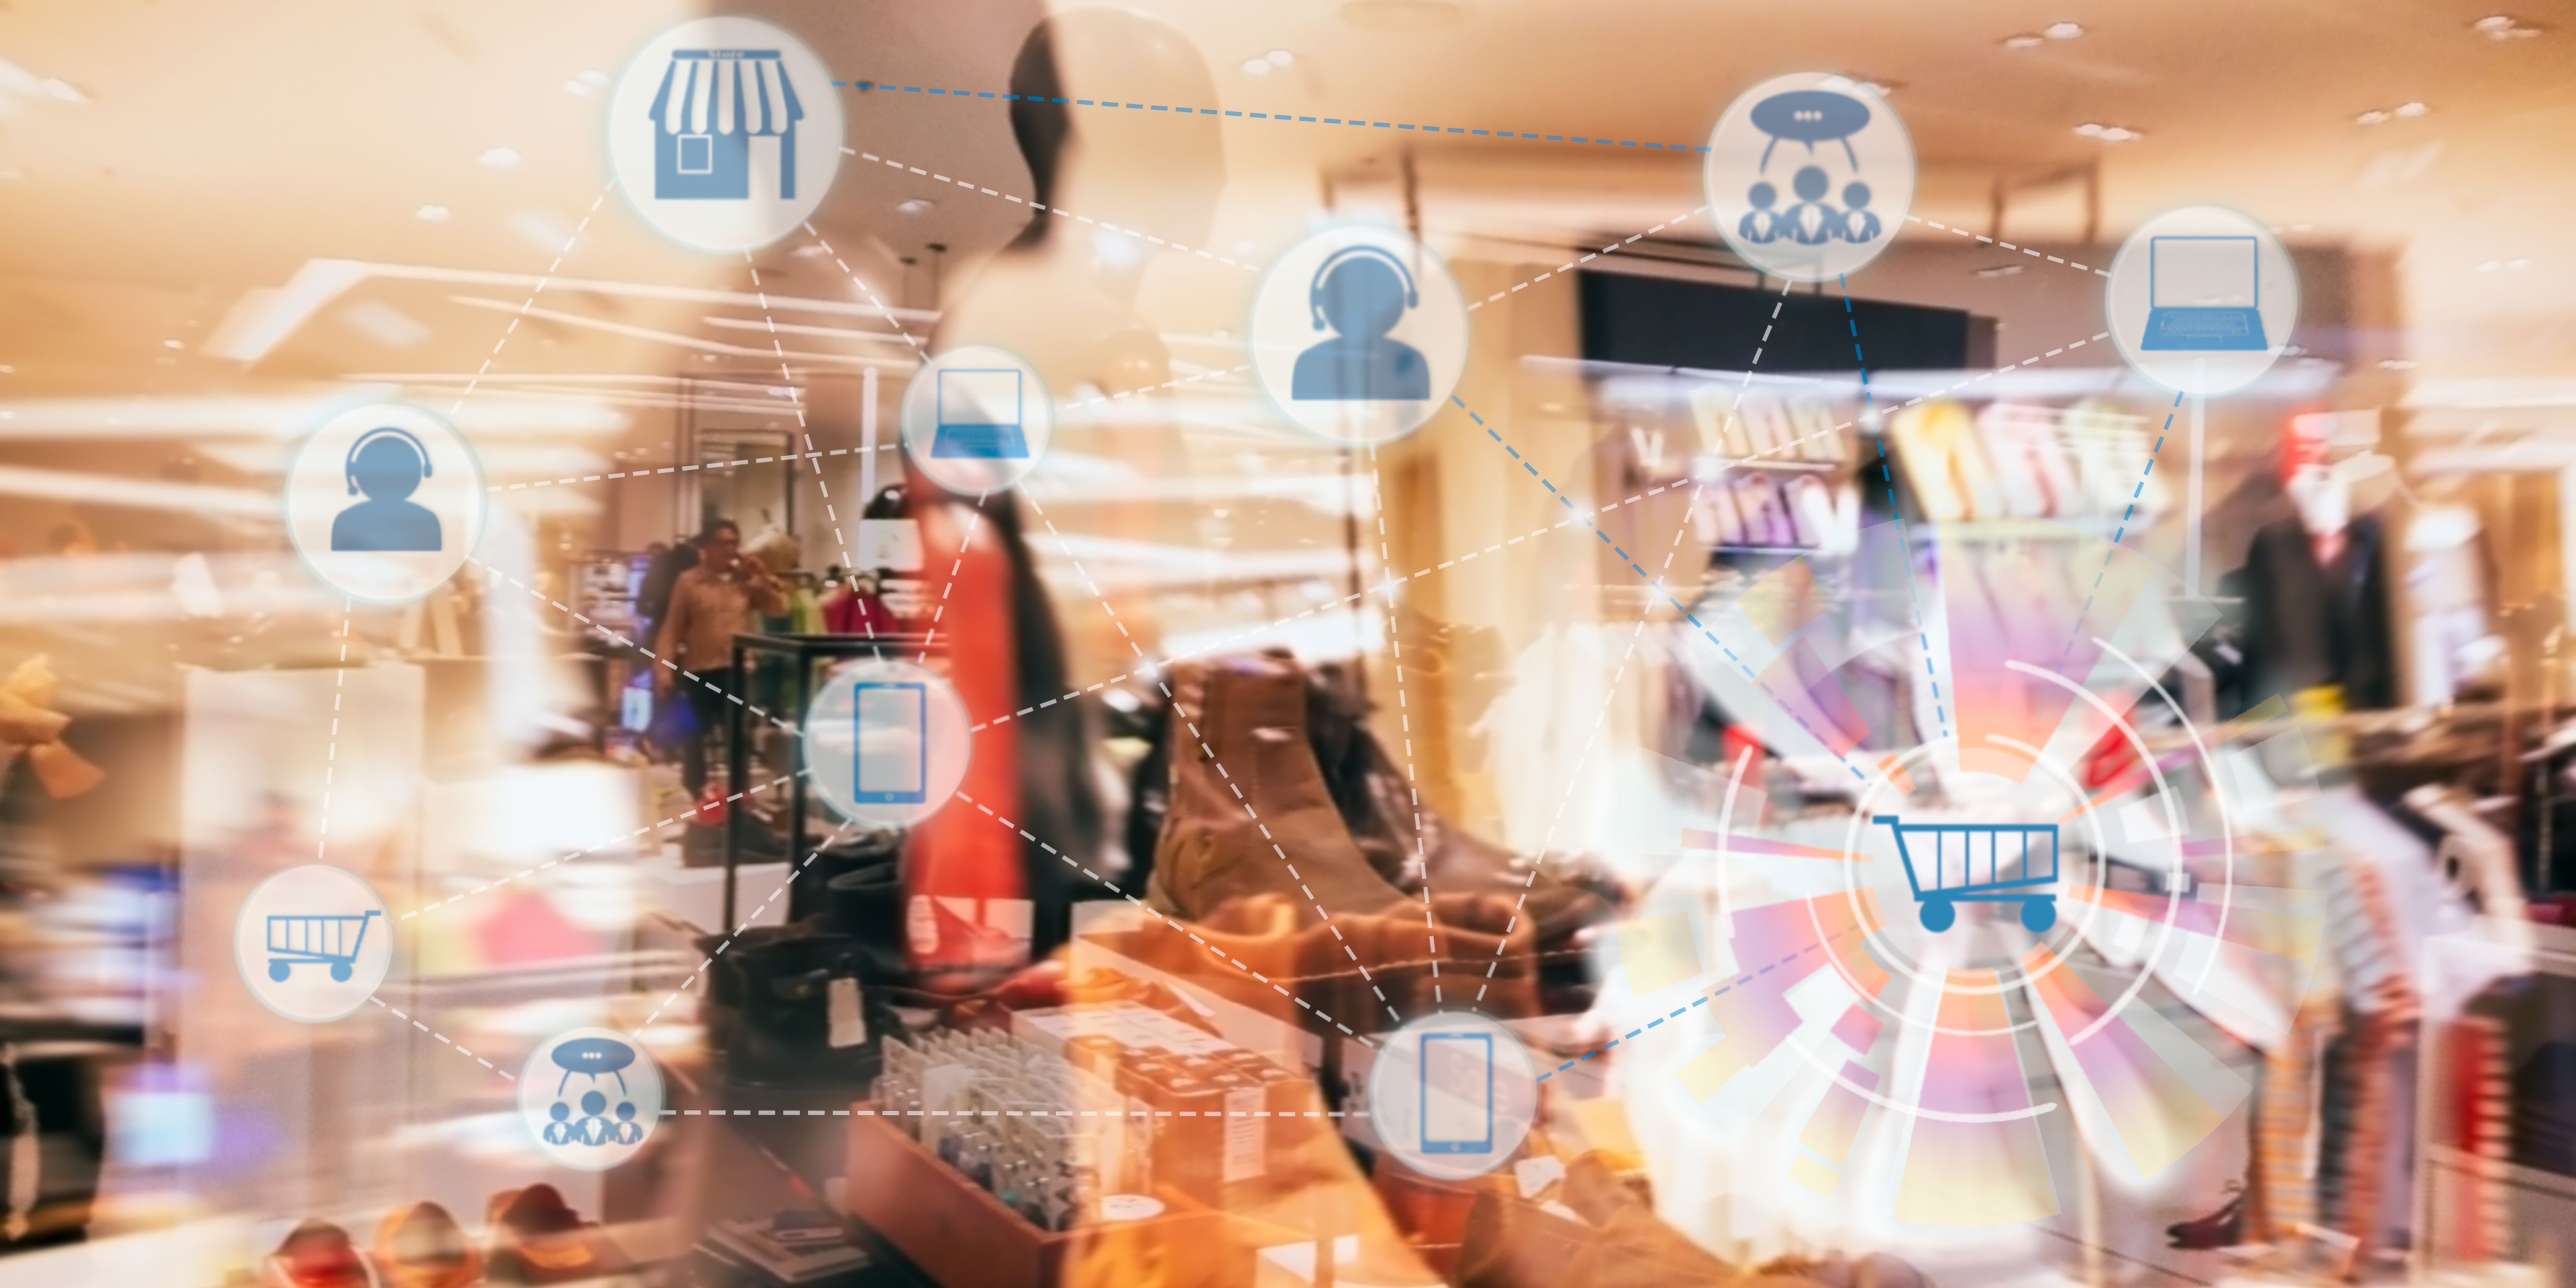 Machine Learning & The Internet of Things: FMCG & RETAIL